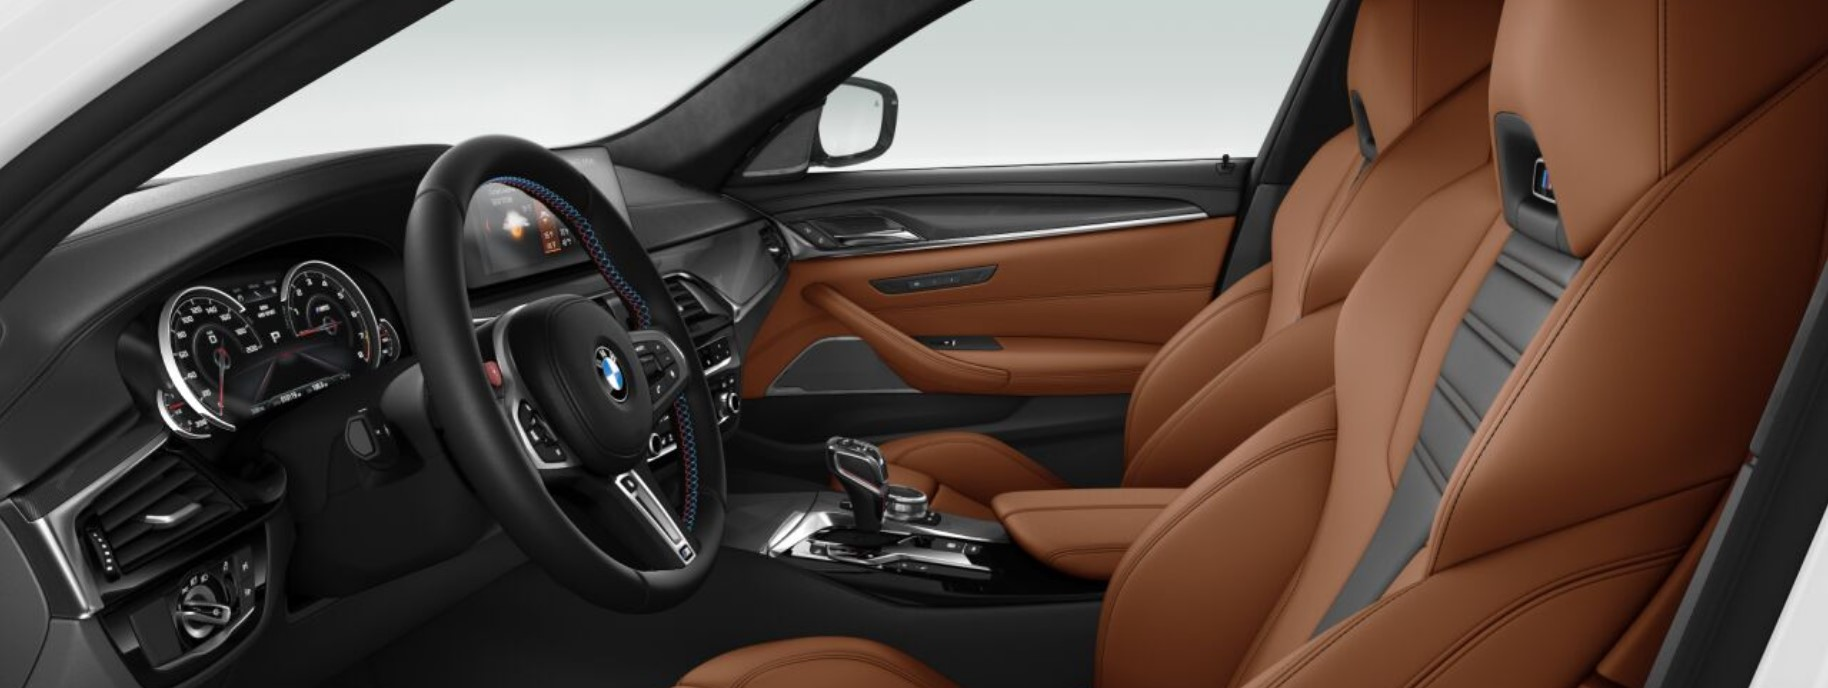 2018 BMW M5 Brown and Black Interior